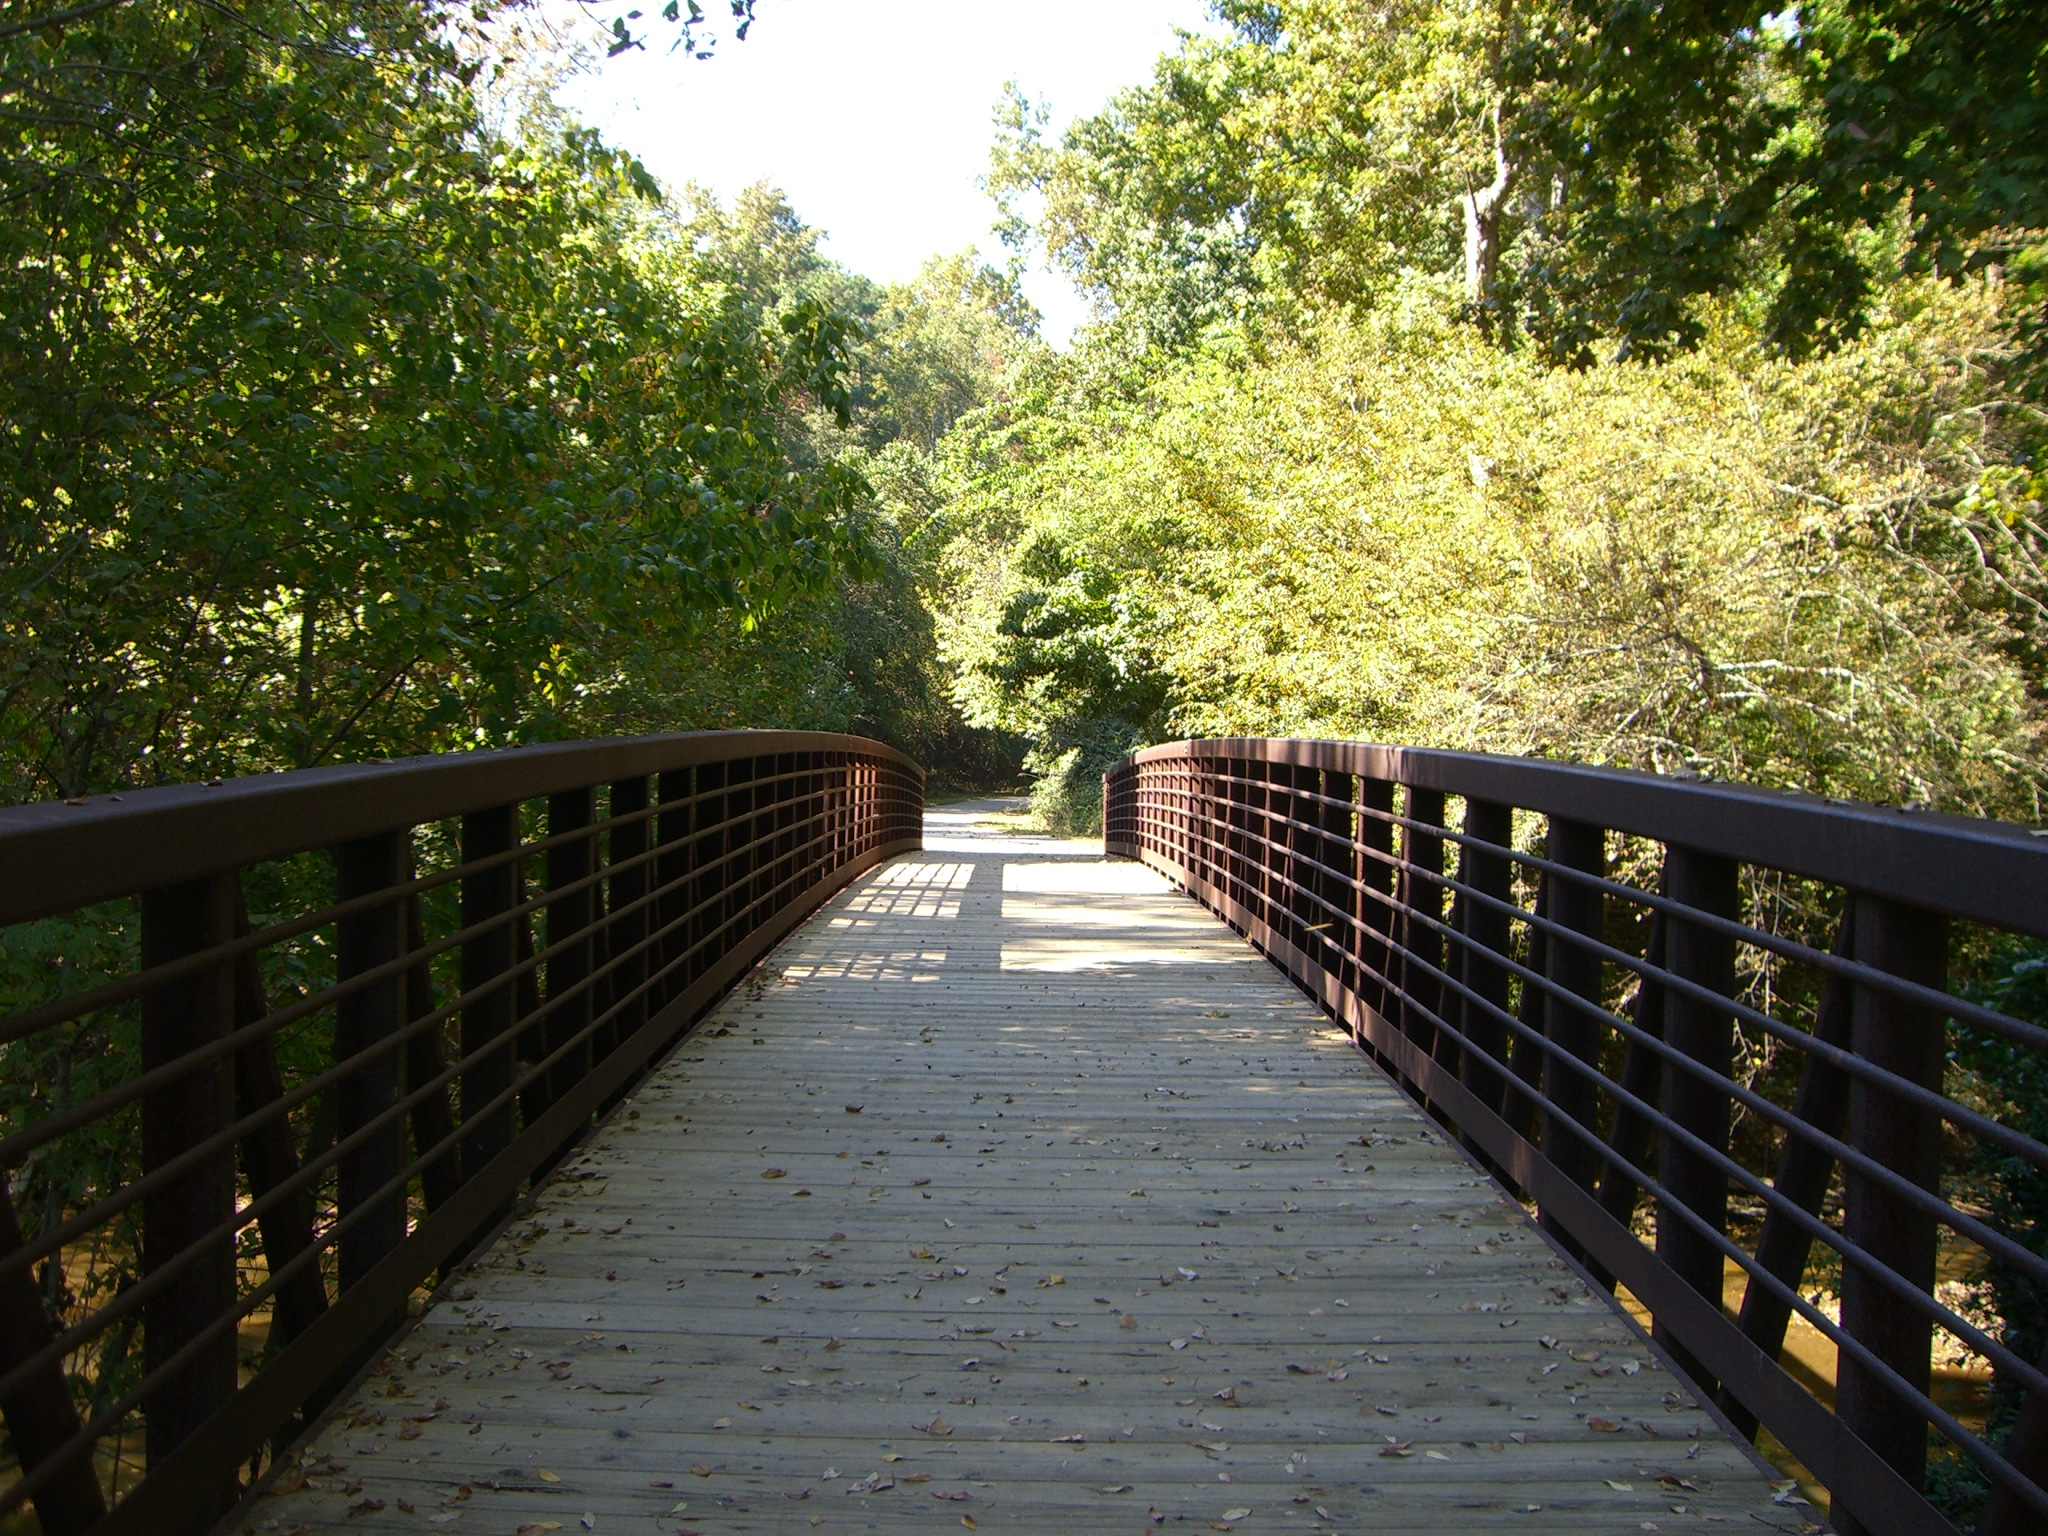 Greenway bridge